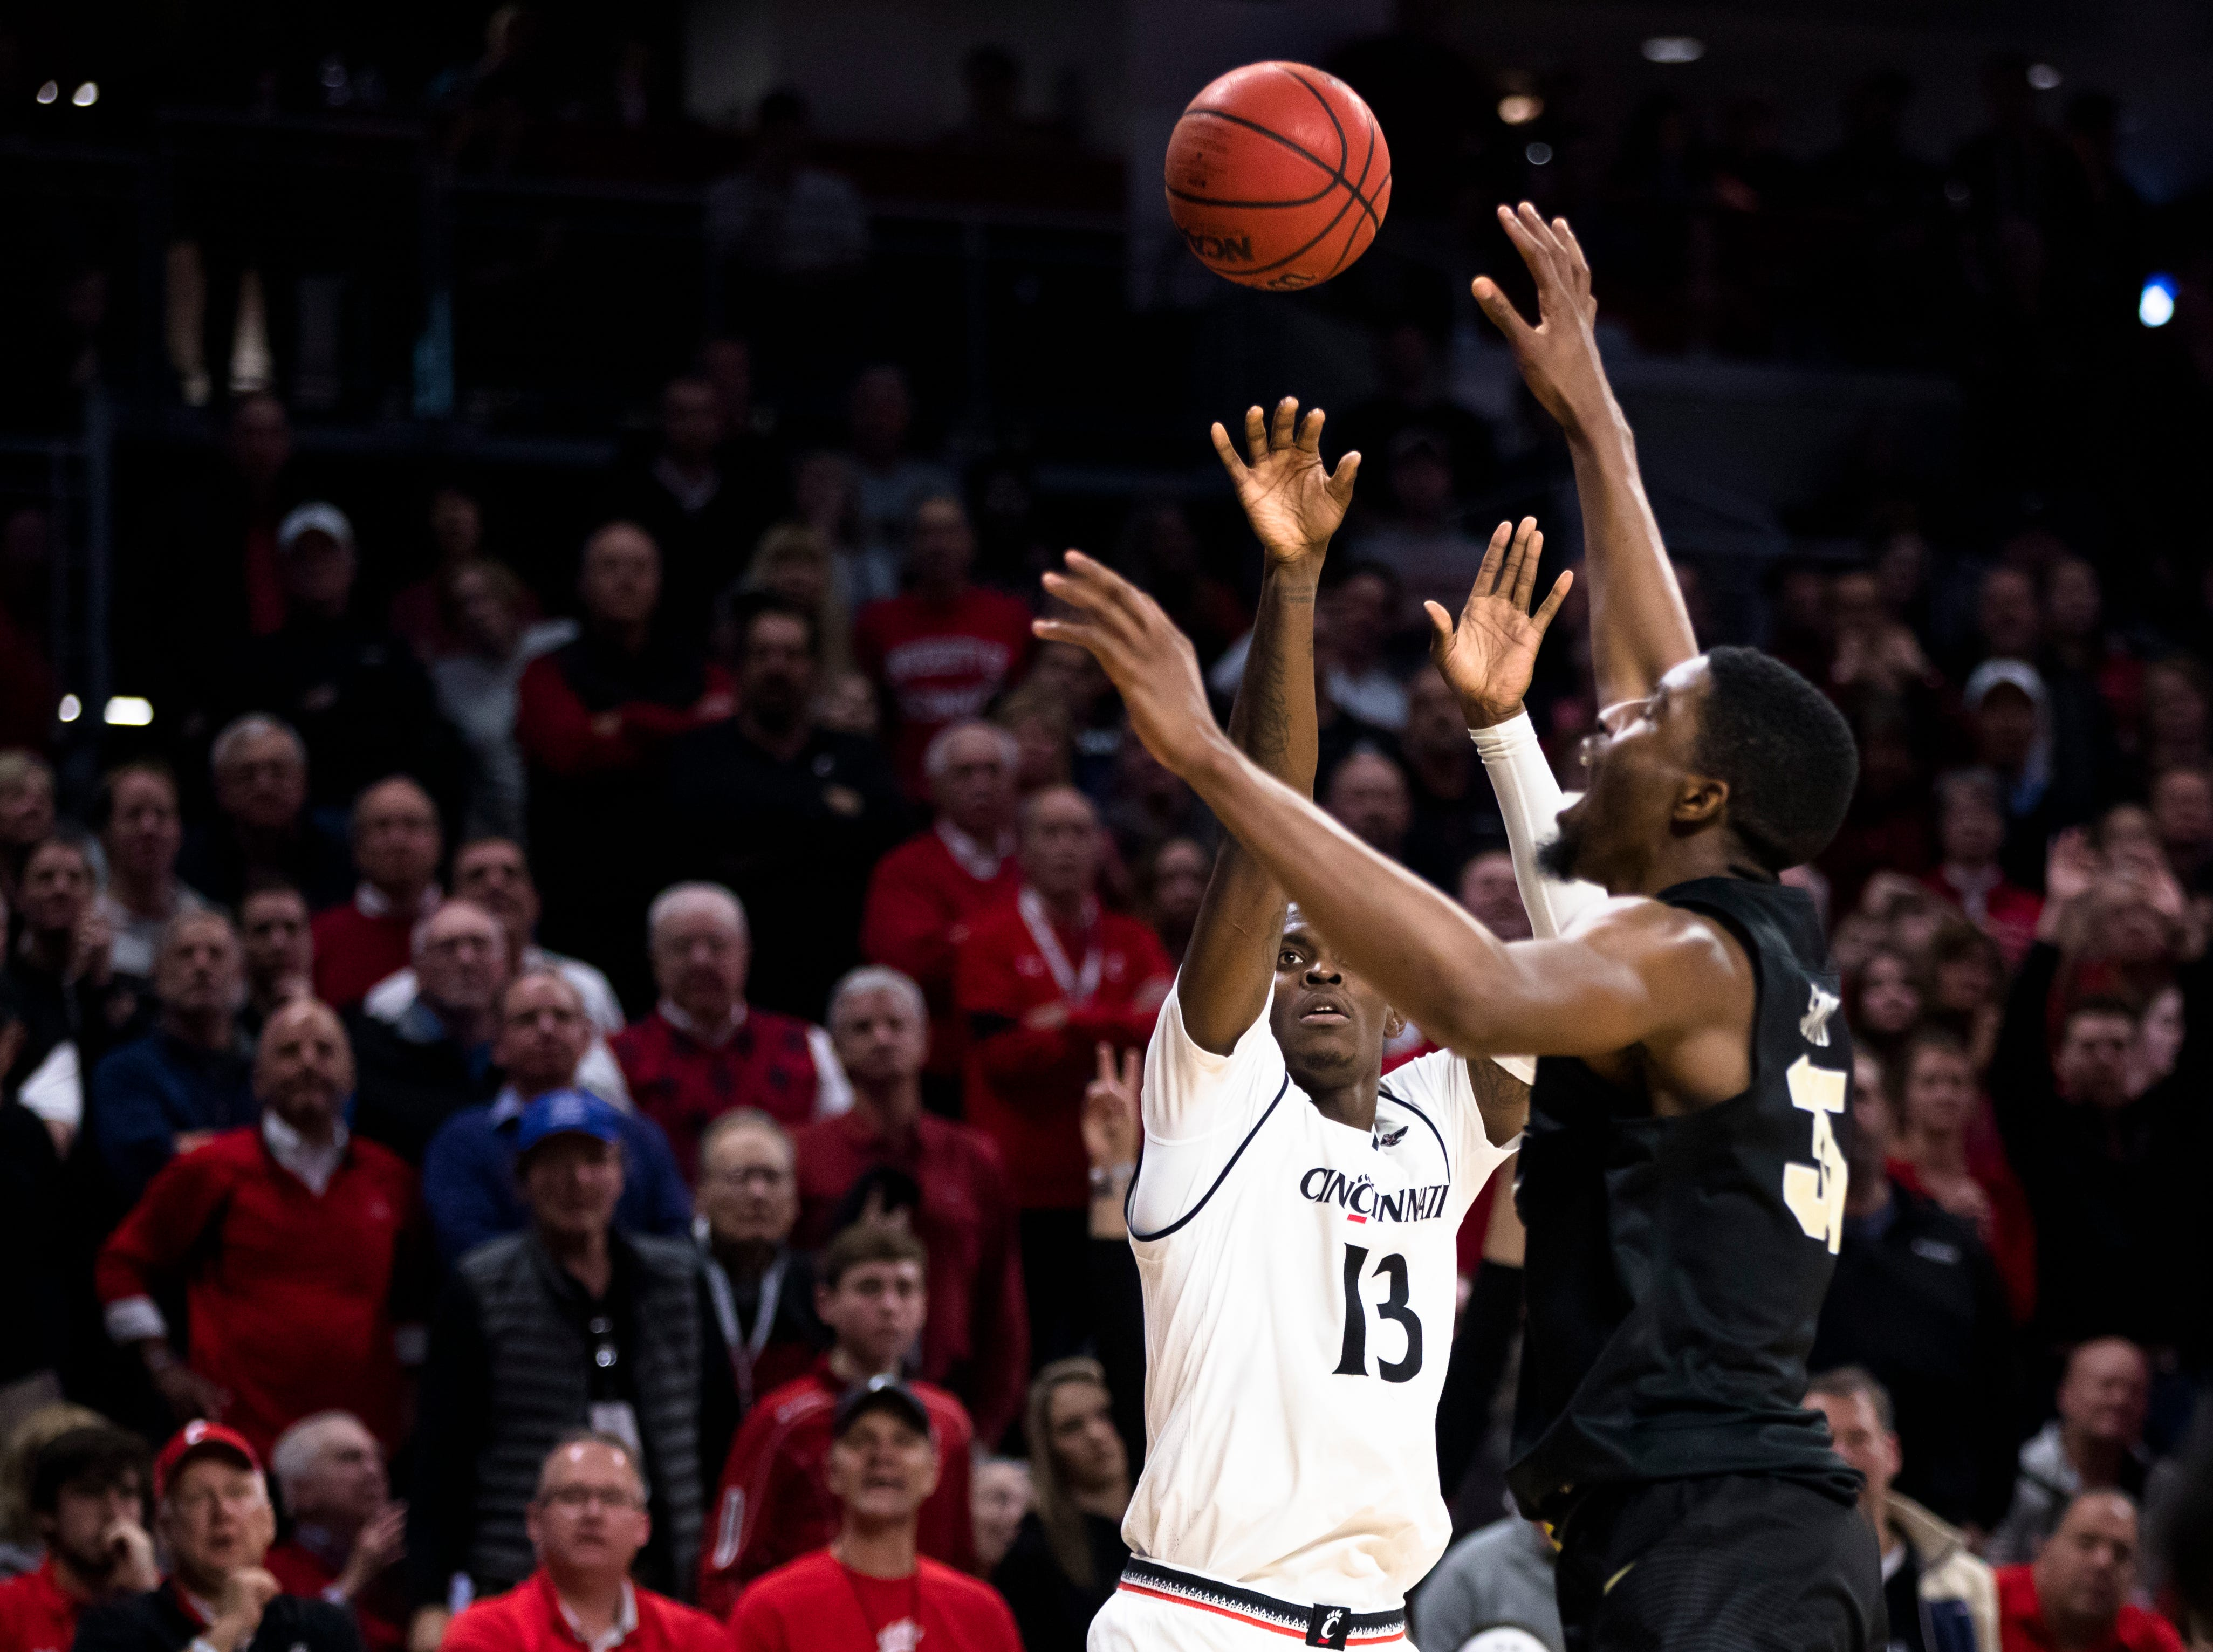 Cincinnati Bearcats forward Trevon Scott (13) hits a 3-pointer over UCF Knights forward Collin Smith (35) in the second half of the NCAA men's basketball game between Cincinnati Bearcats and UCF Knights on Thursday, Feb. 21, 2019, at Fifth Third Arena in Cincinnati.